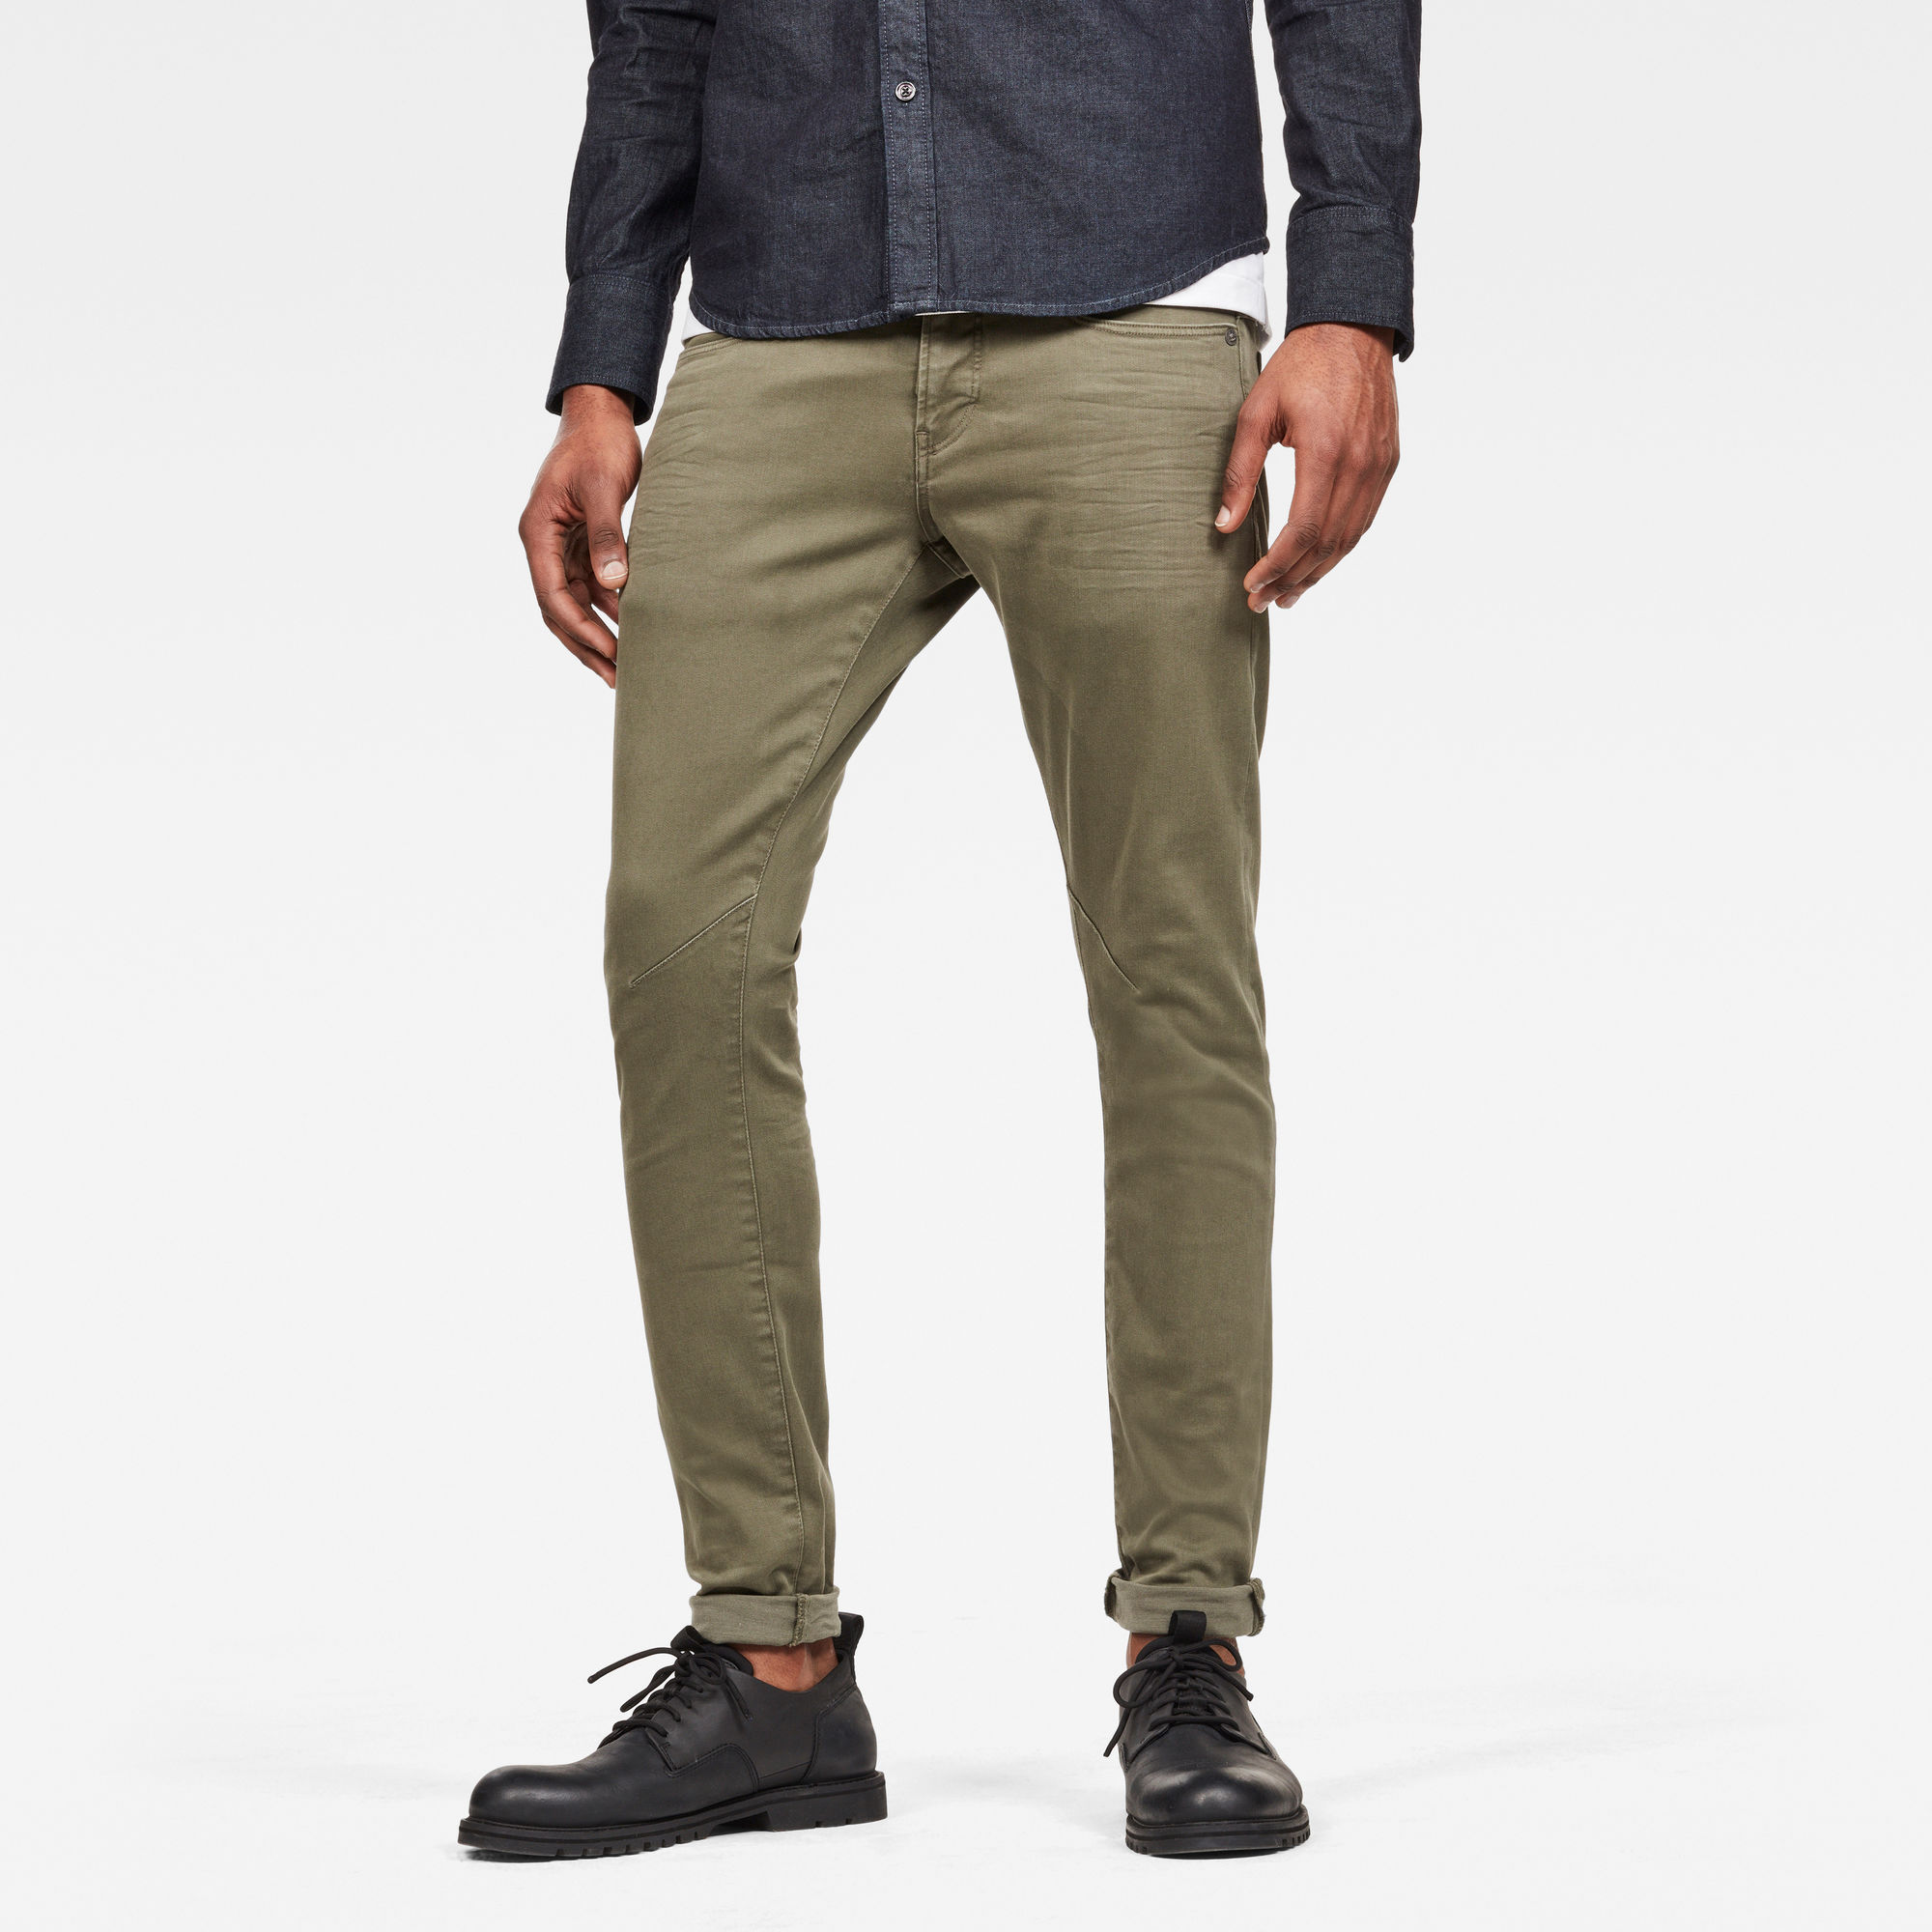 Image of G Star Raw D-Staq 5-Pocket Skinny Colored Jeans